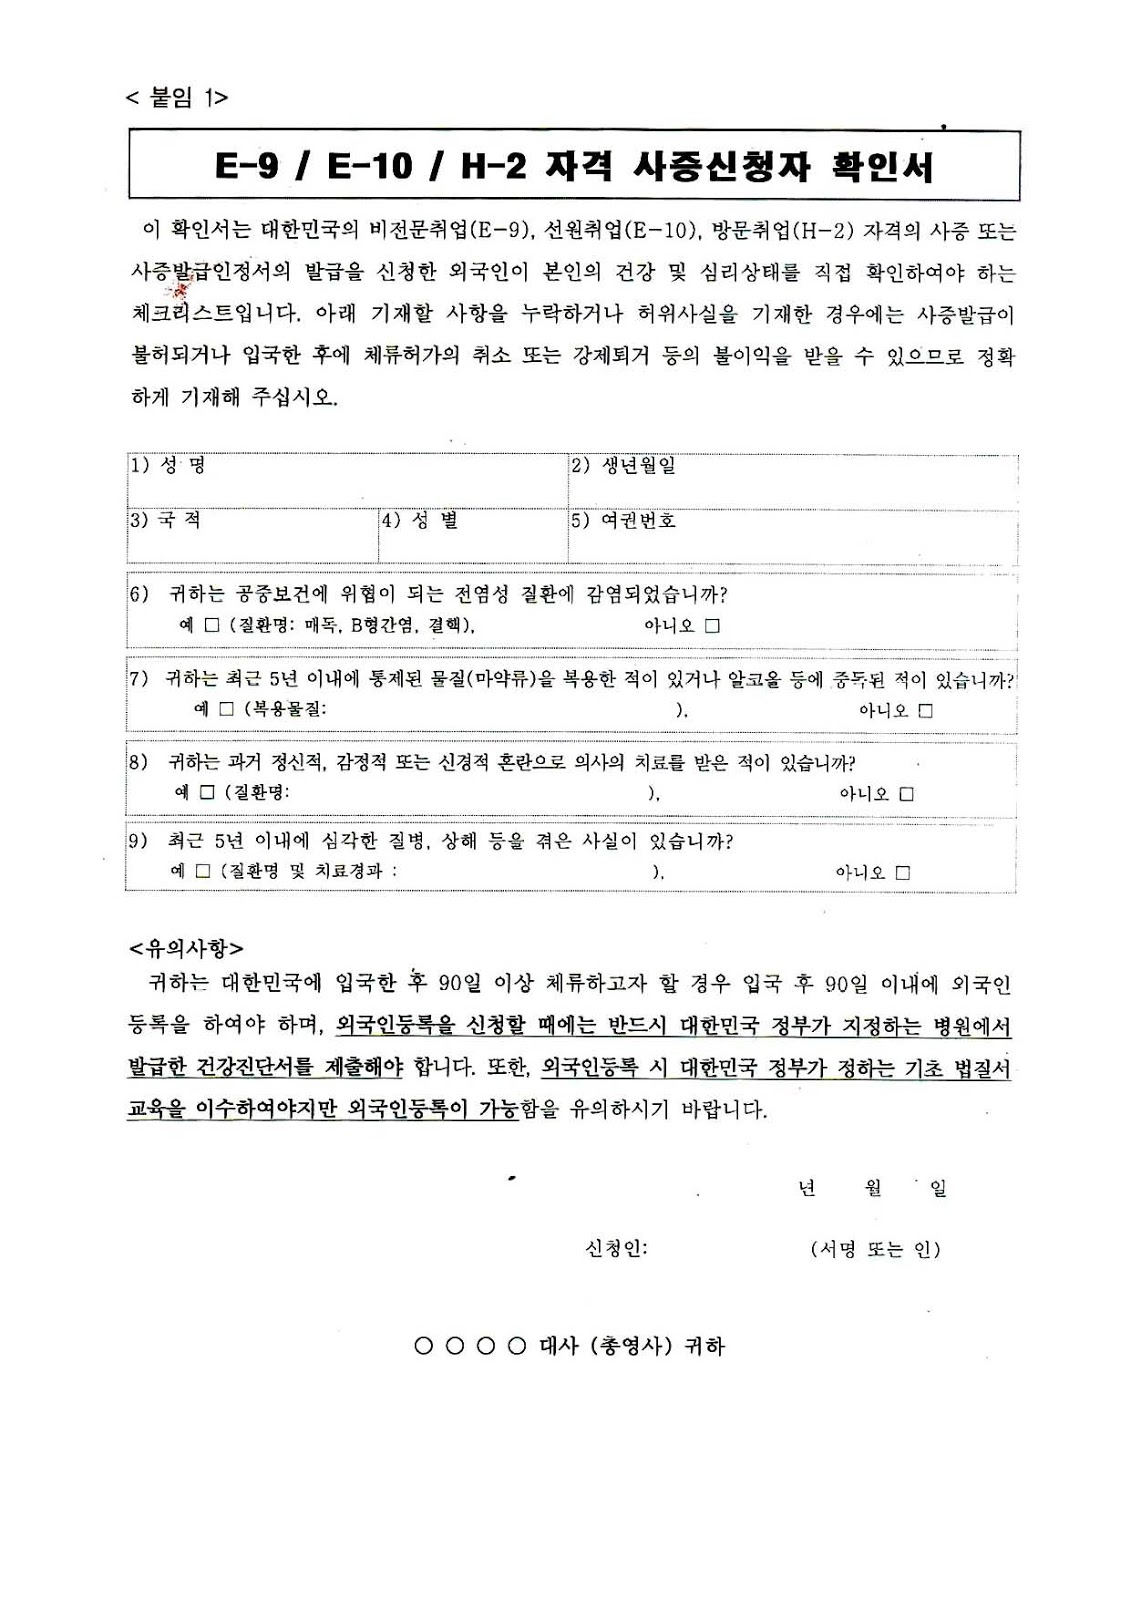 125_Page_10 Job Application Form For Eps Topik on free generic, blank generic, big lots, sonic printable, part time,